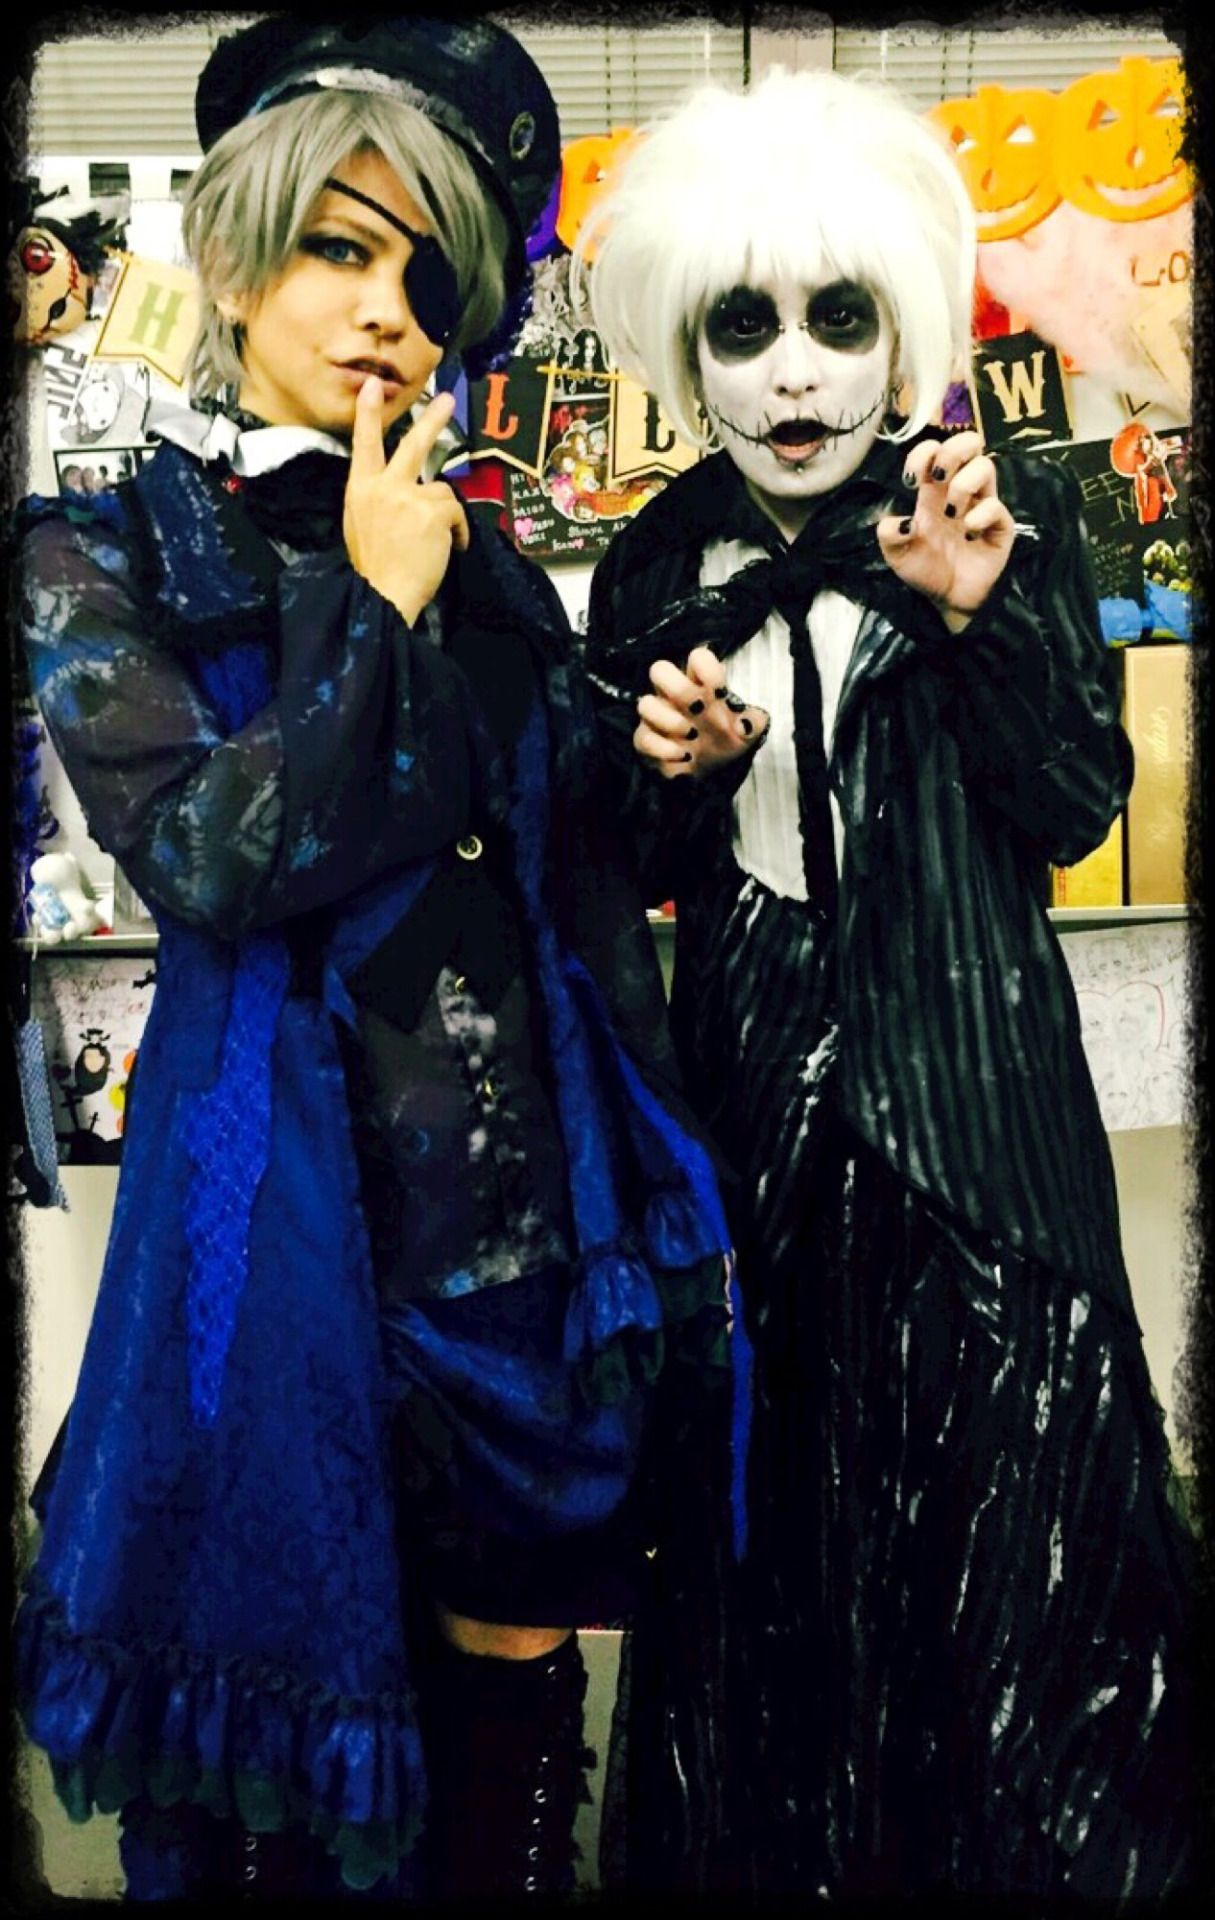 BackStage Day 2: #HYDE with Hitsugi(NIGHTMARE) #VAMPS ...